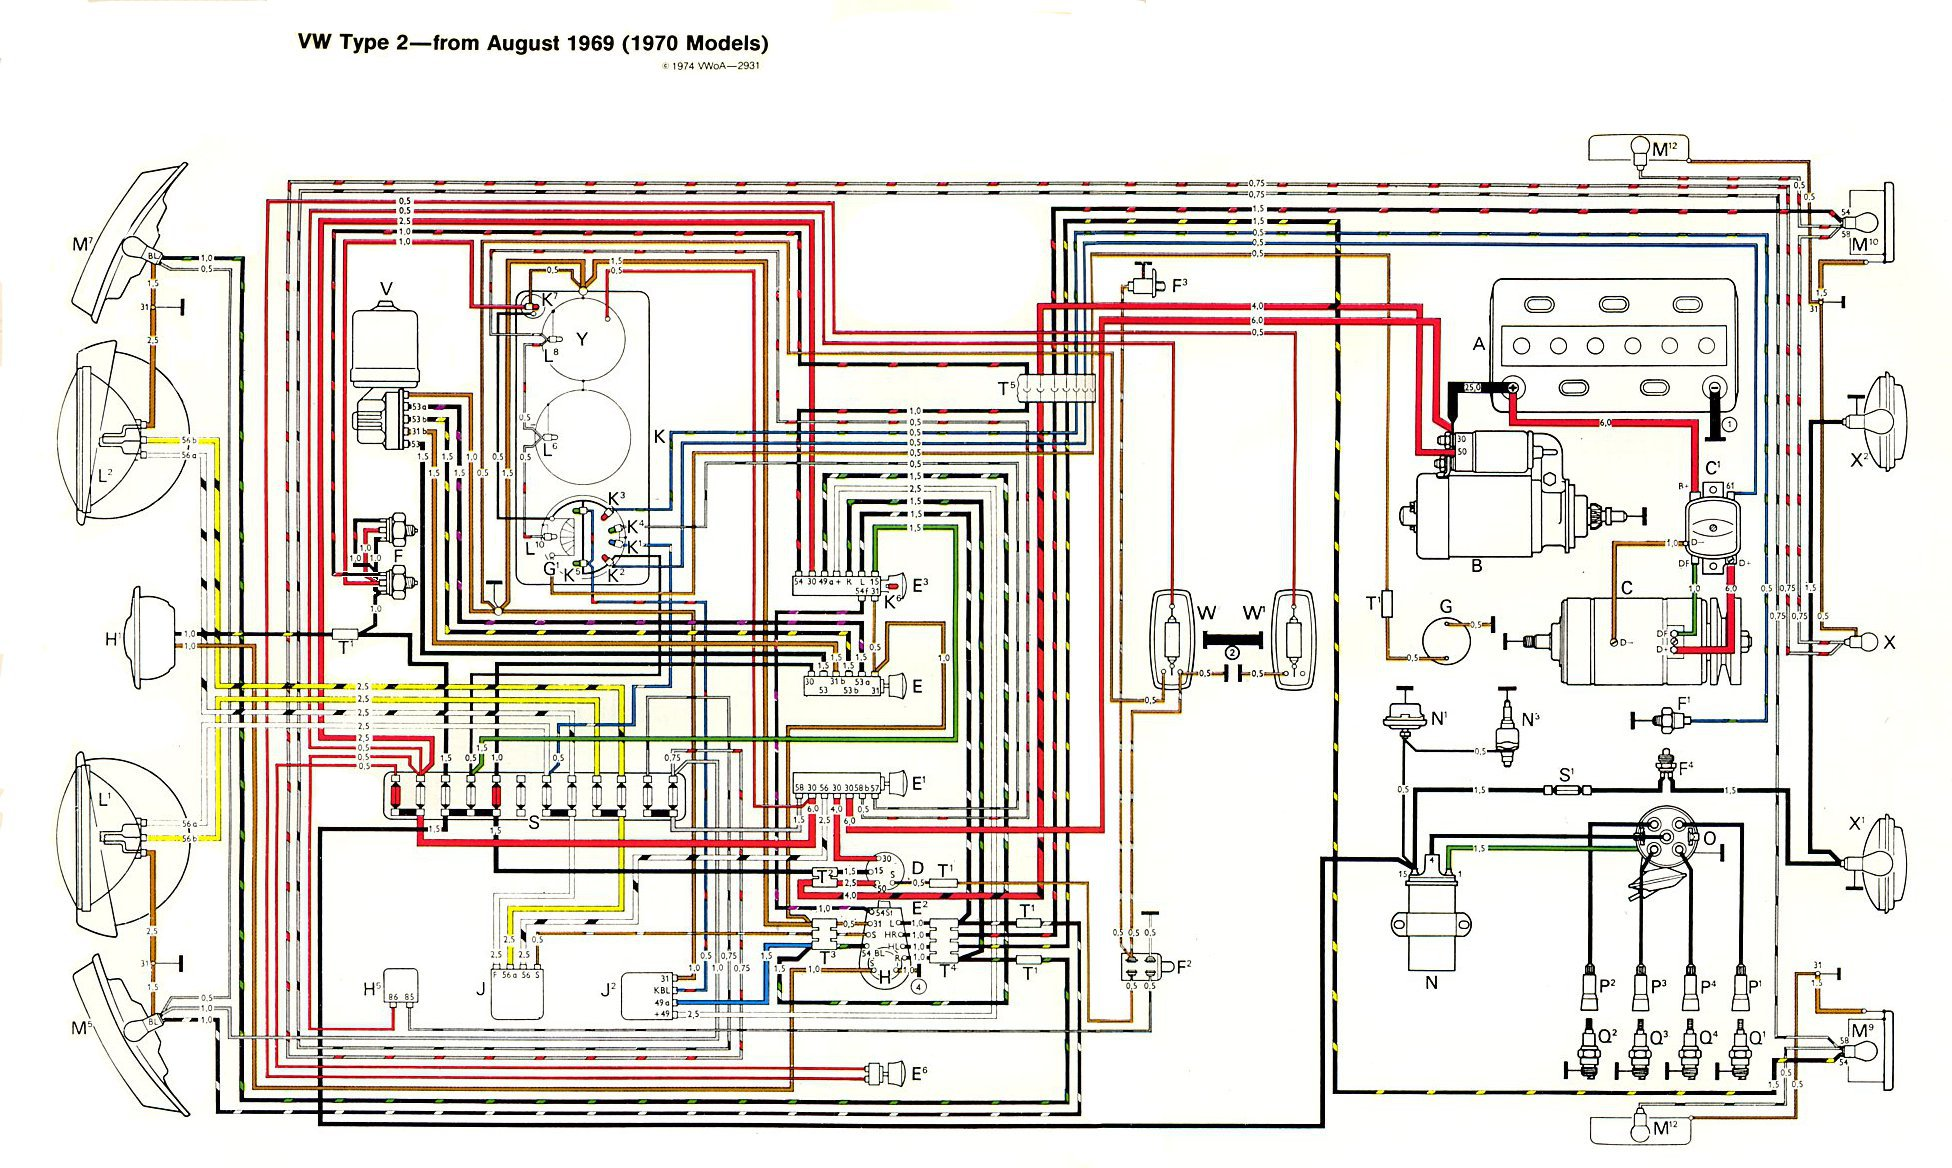 Thesamba type 2 wiring diagrams asfbconference2016 Gallery